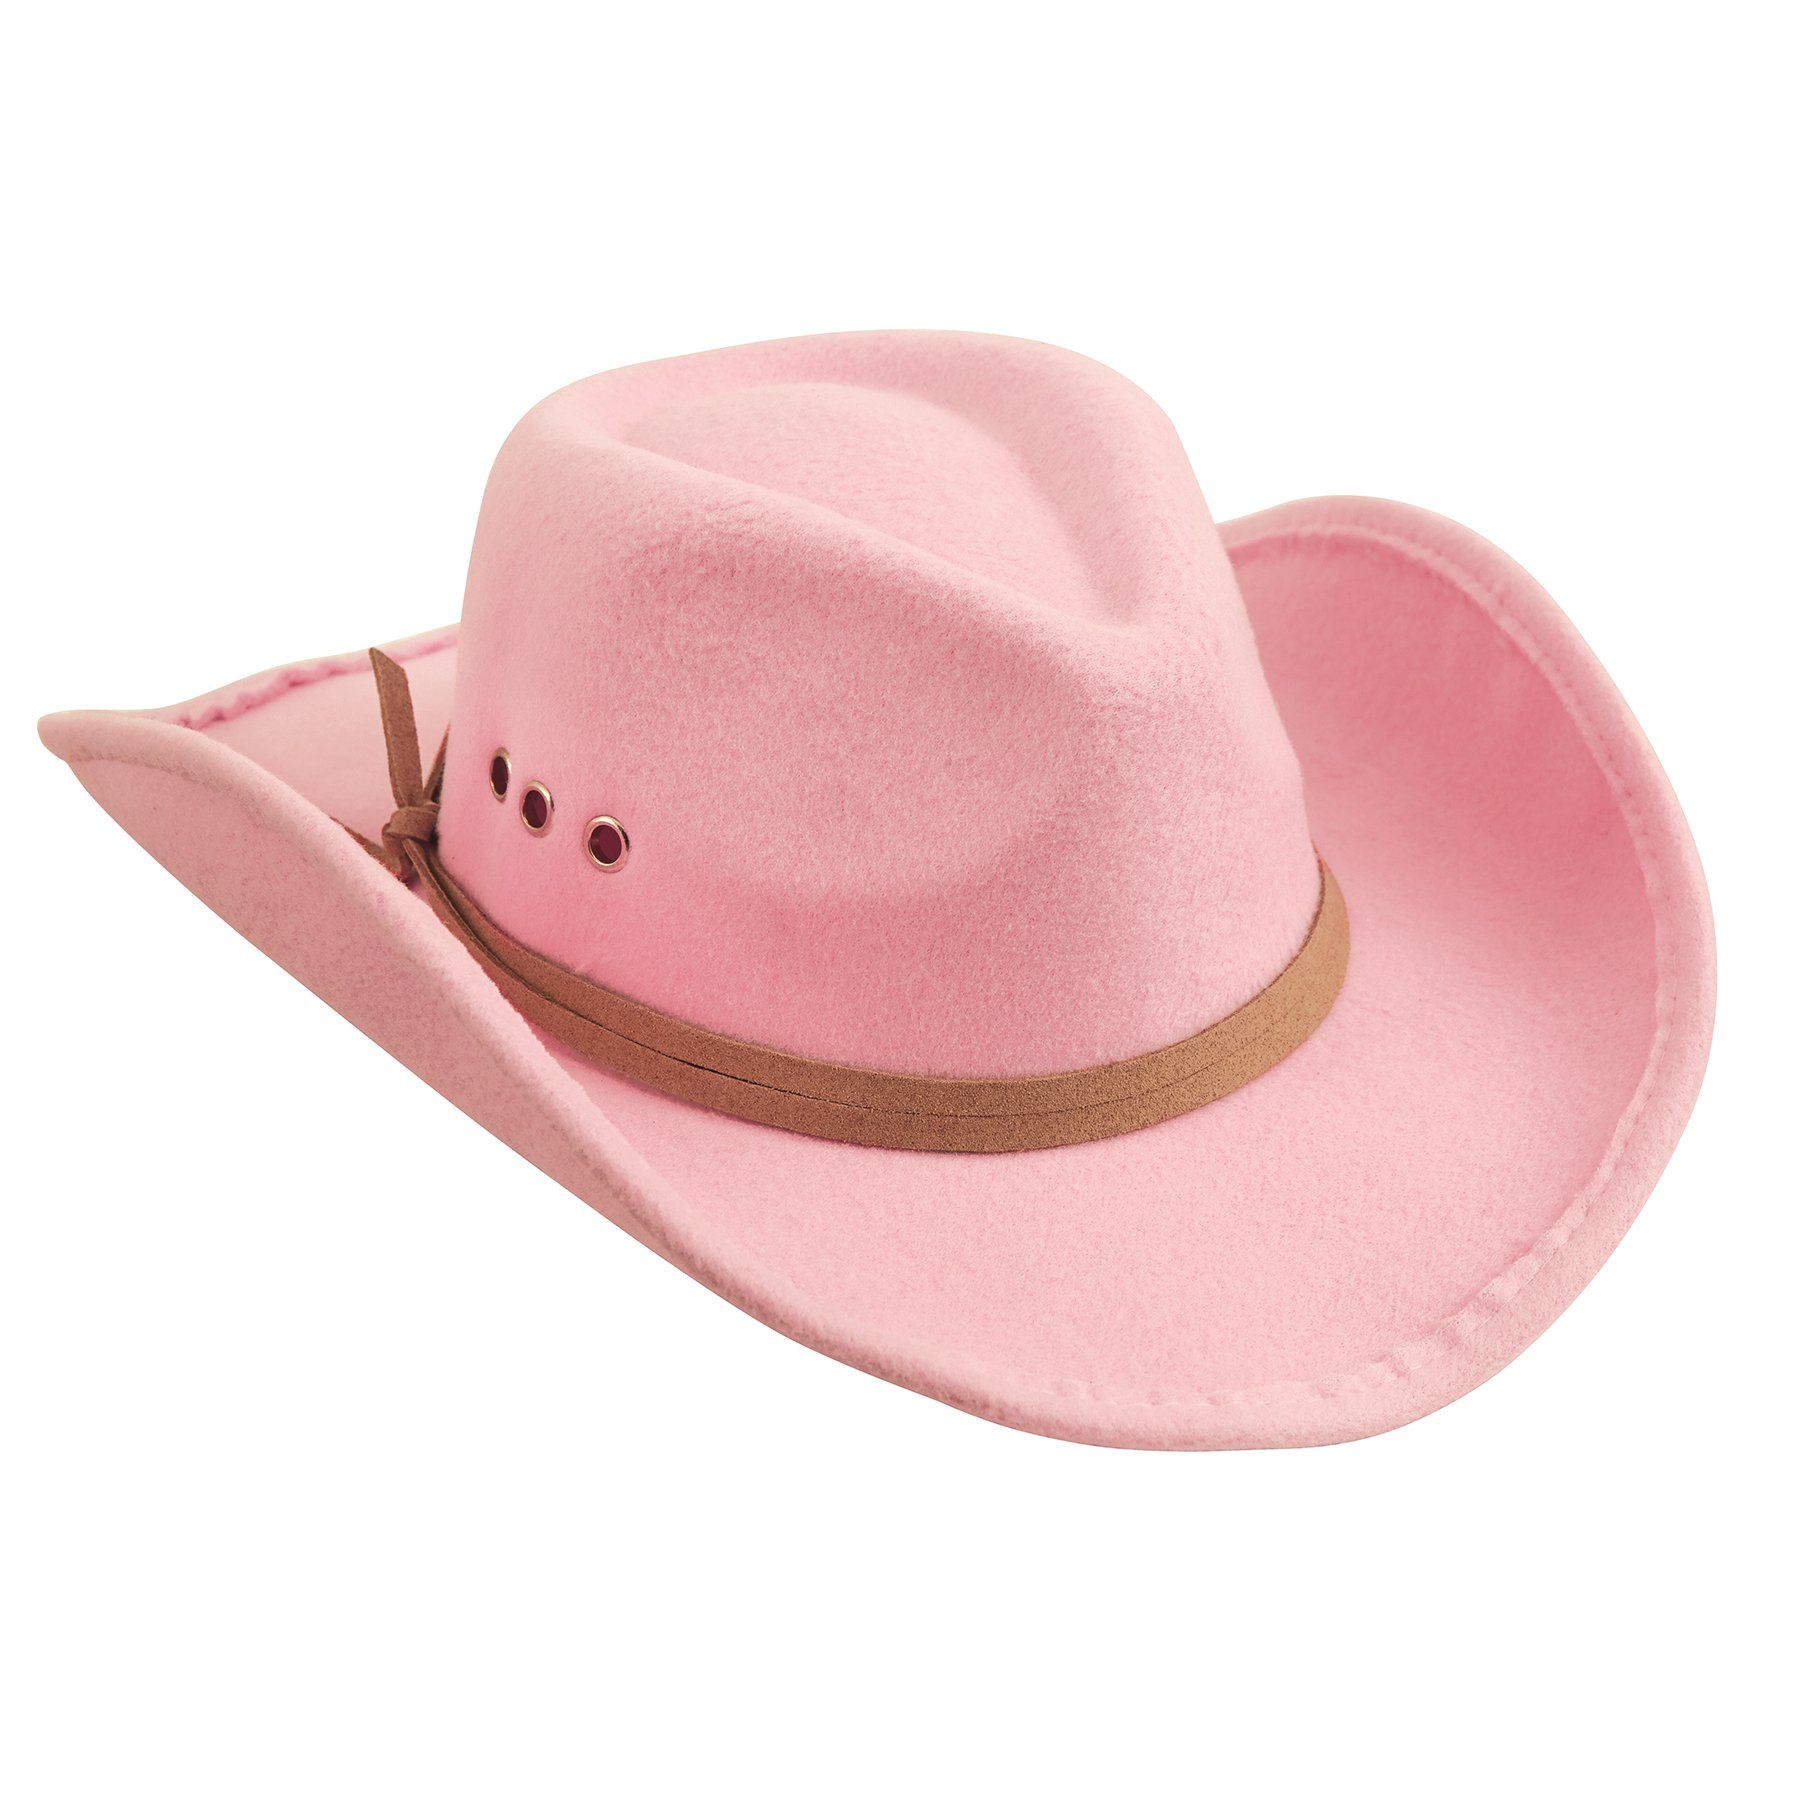 Mud Pie Girls Pink Cowboy Hat (one Size) by Mud Pie (Image #1)